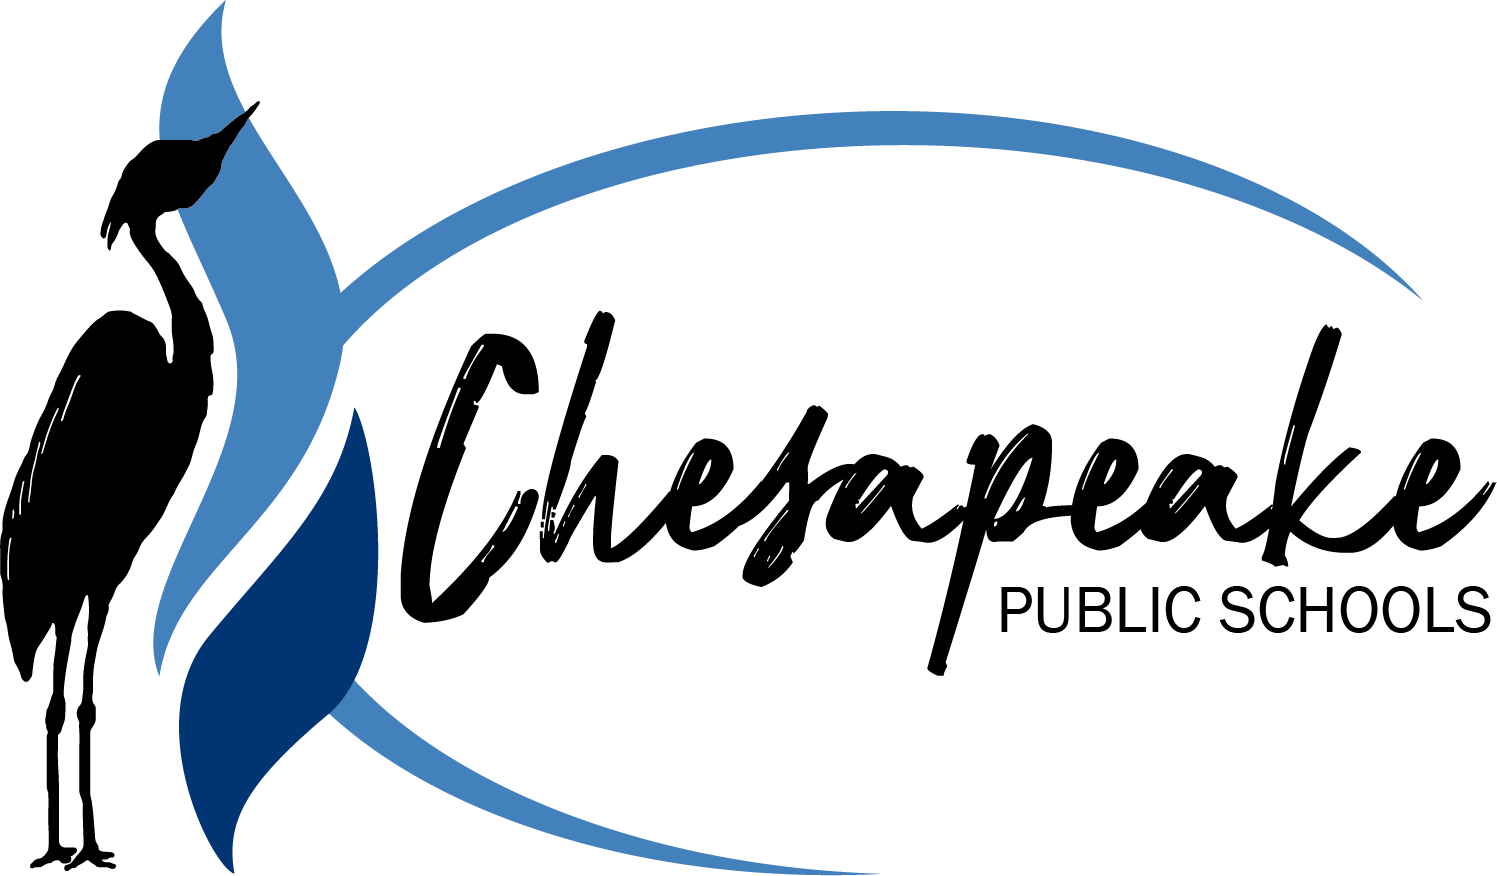 Chesapeake Public Schools 312 Cedar Road Chesapeake, VA 23322 • 757-547-0153